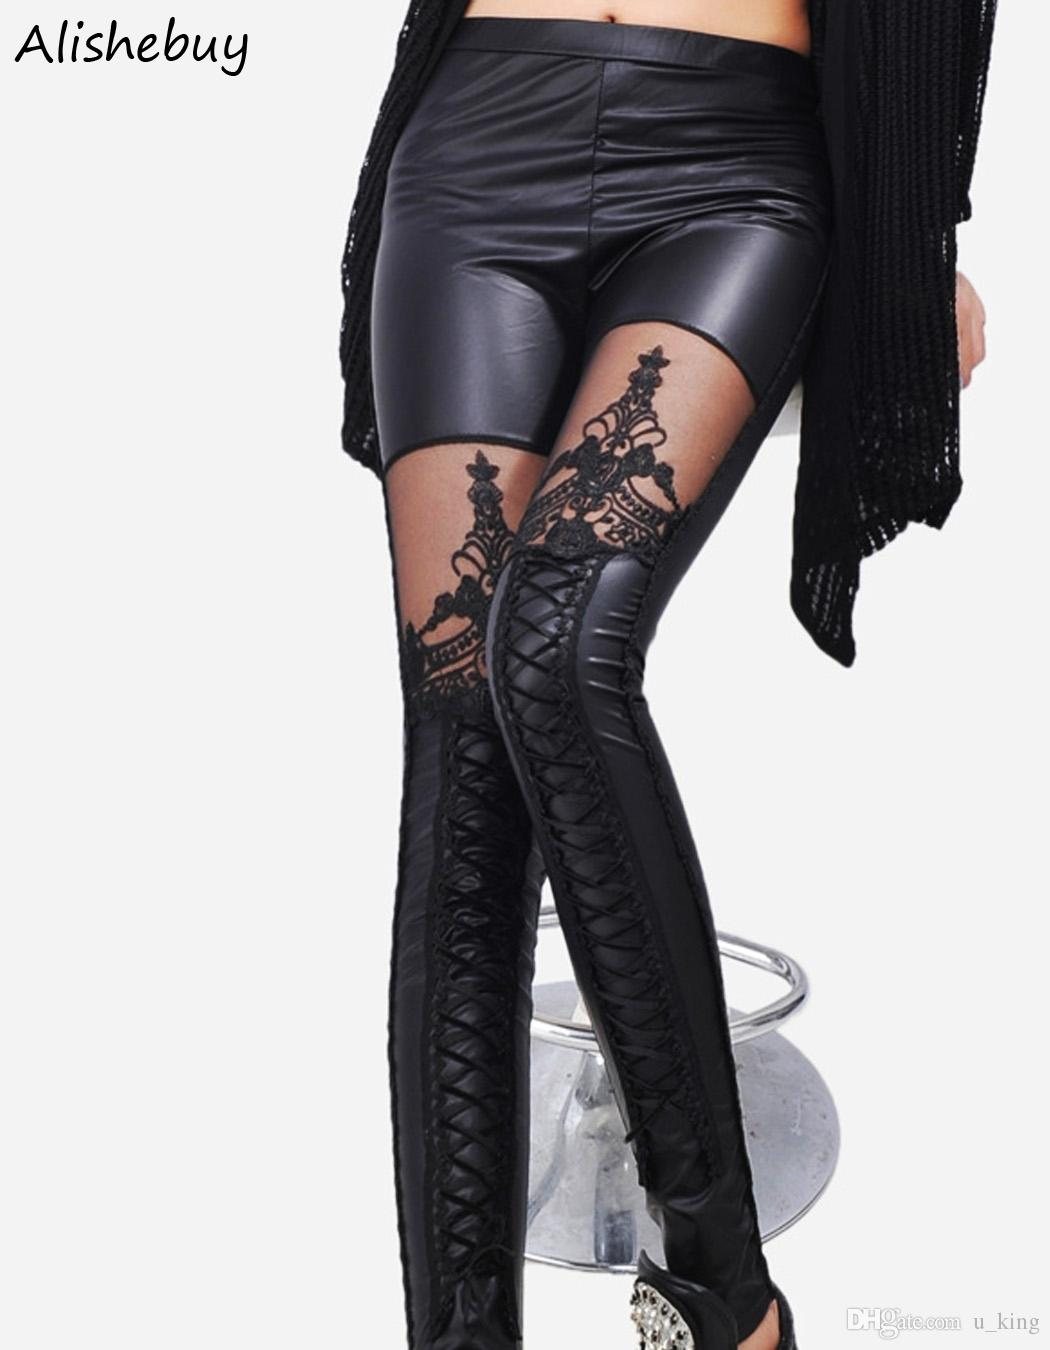 e044461a8d1d7 2019 Hot Fashion Women Leggings Embroidery Lace Up Skinny Legging Faux PU  Leather Trousers Patchwork Sexy Lace Leggings Pants Black SV009304 From  U_king, ...